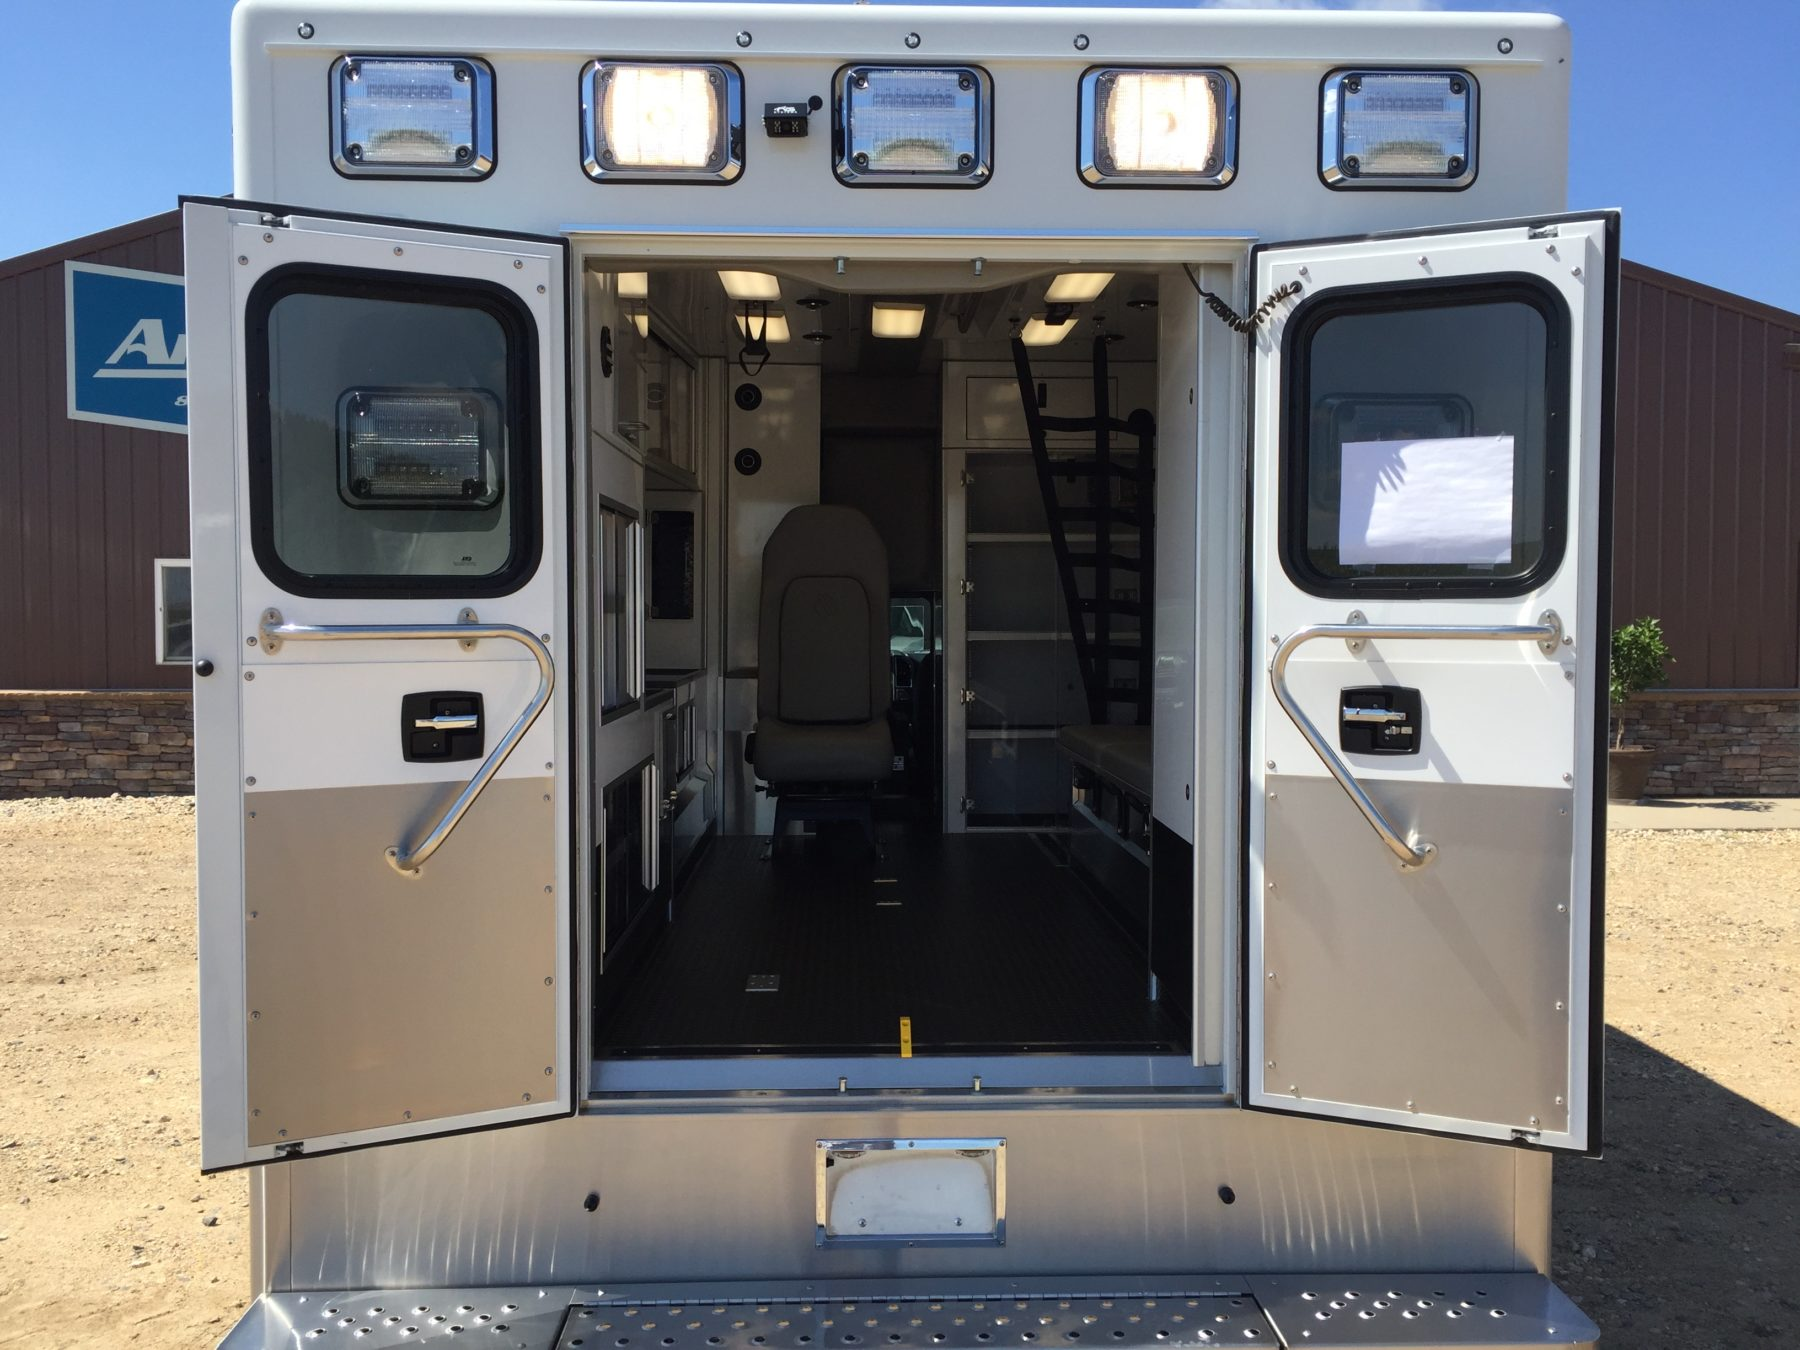 2018 Ford F350 4x4 Type 1 Ambulance For Sale – Picture 9